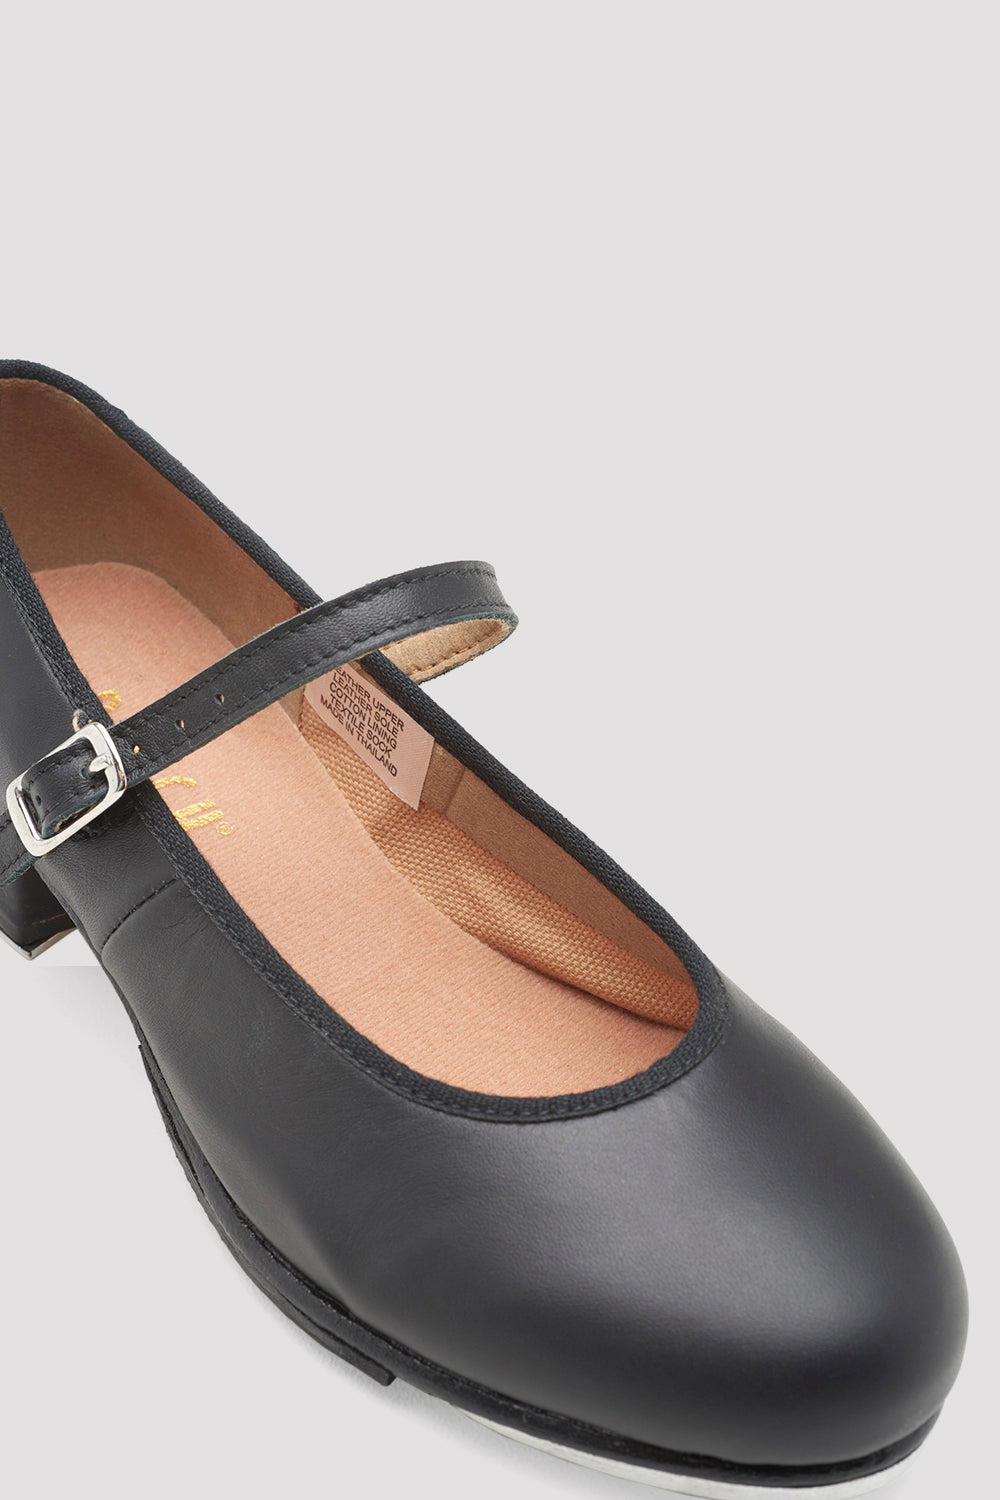 Girls Tap-On Leather Tap Shoes